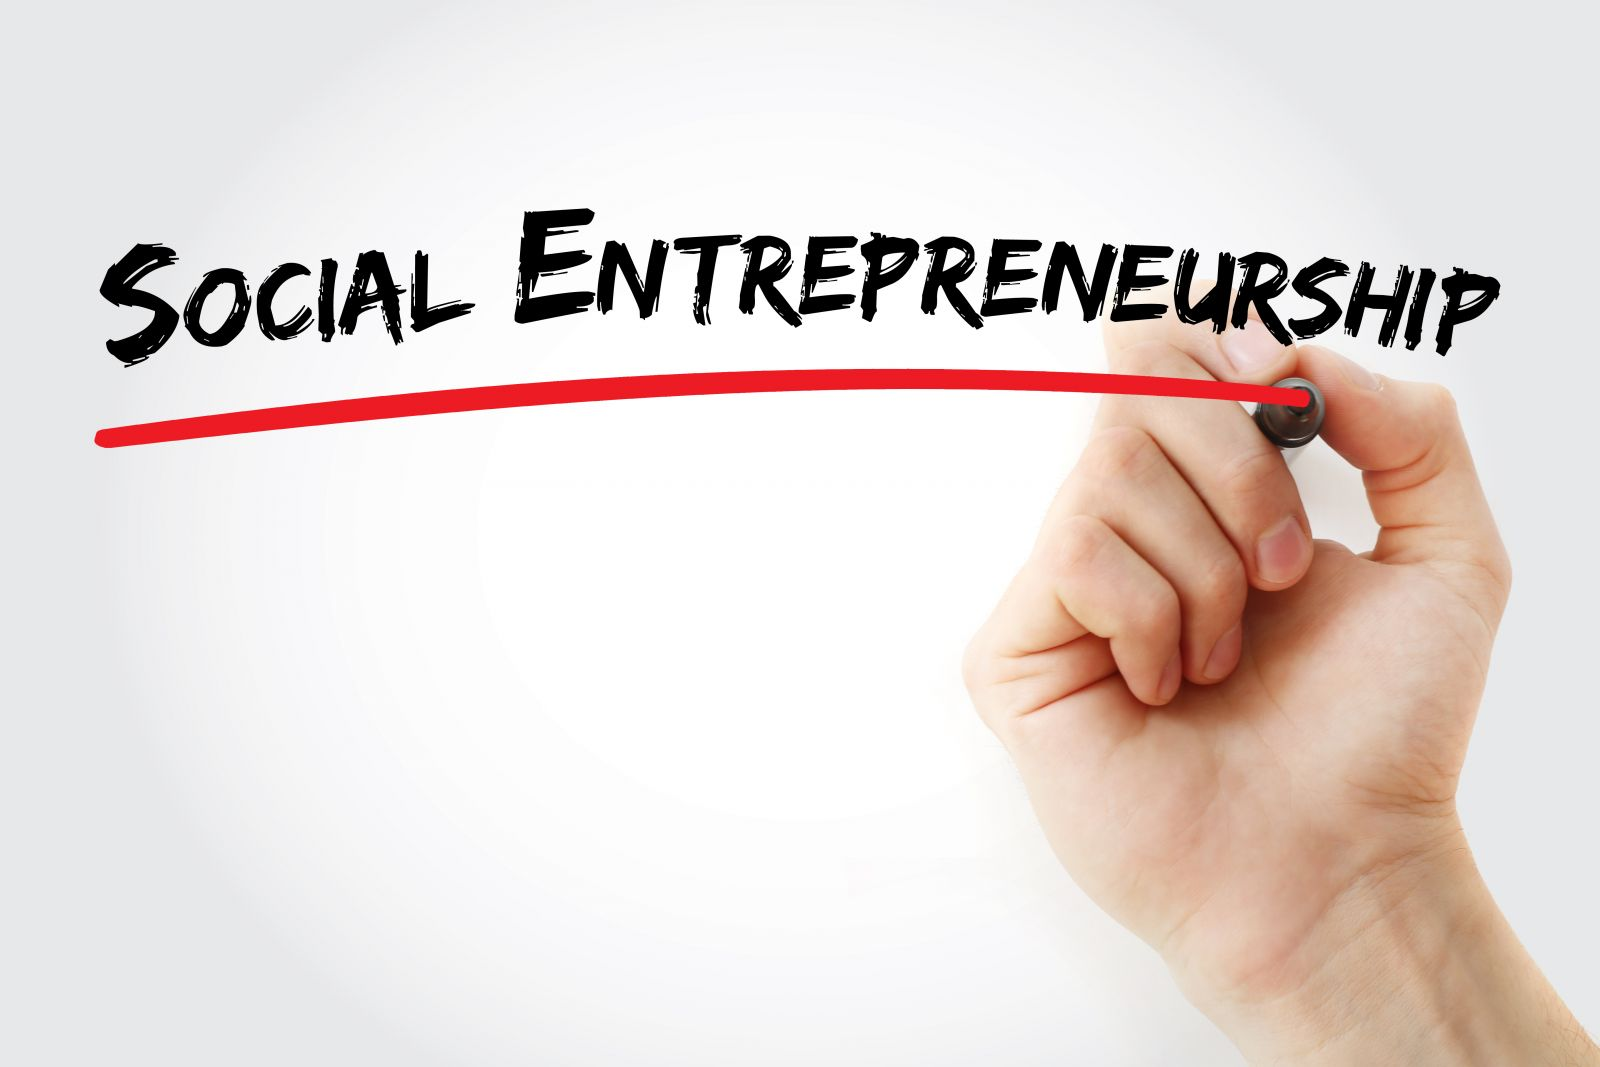 Definition, Advantages and Disadvantages of Social Entrepreneurship